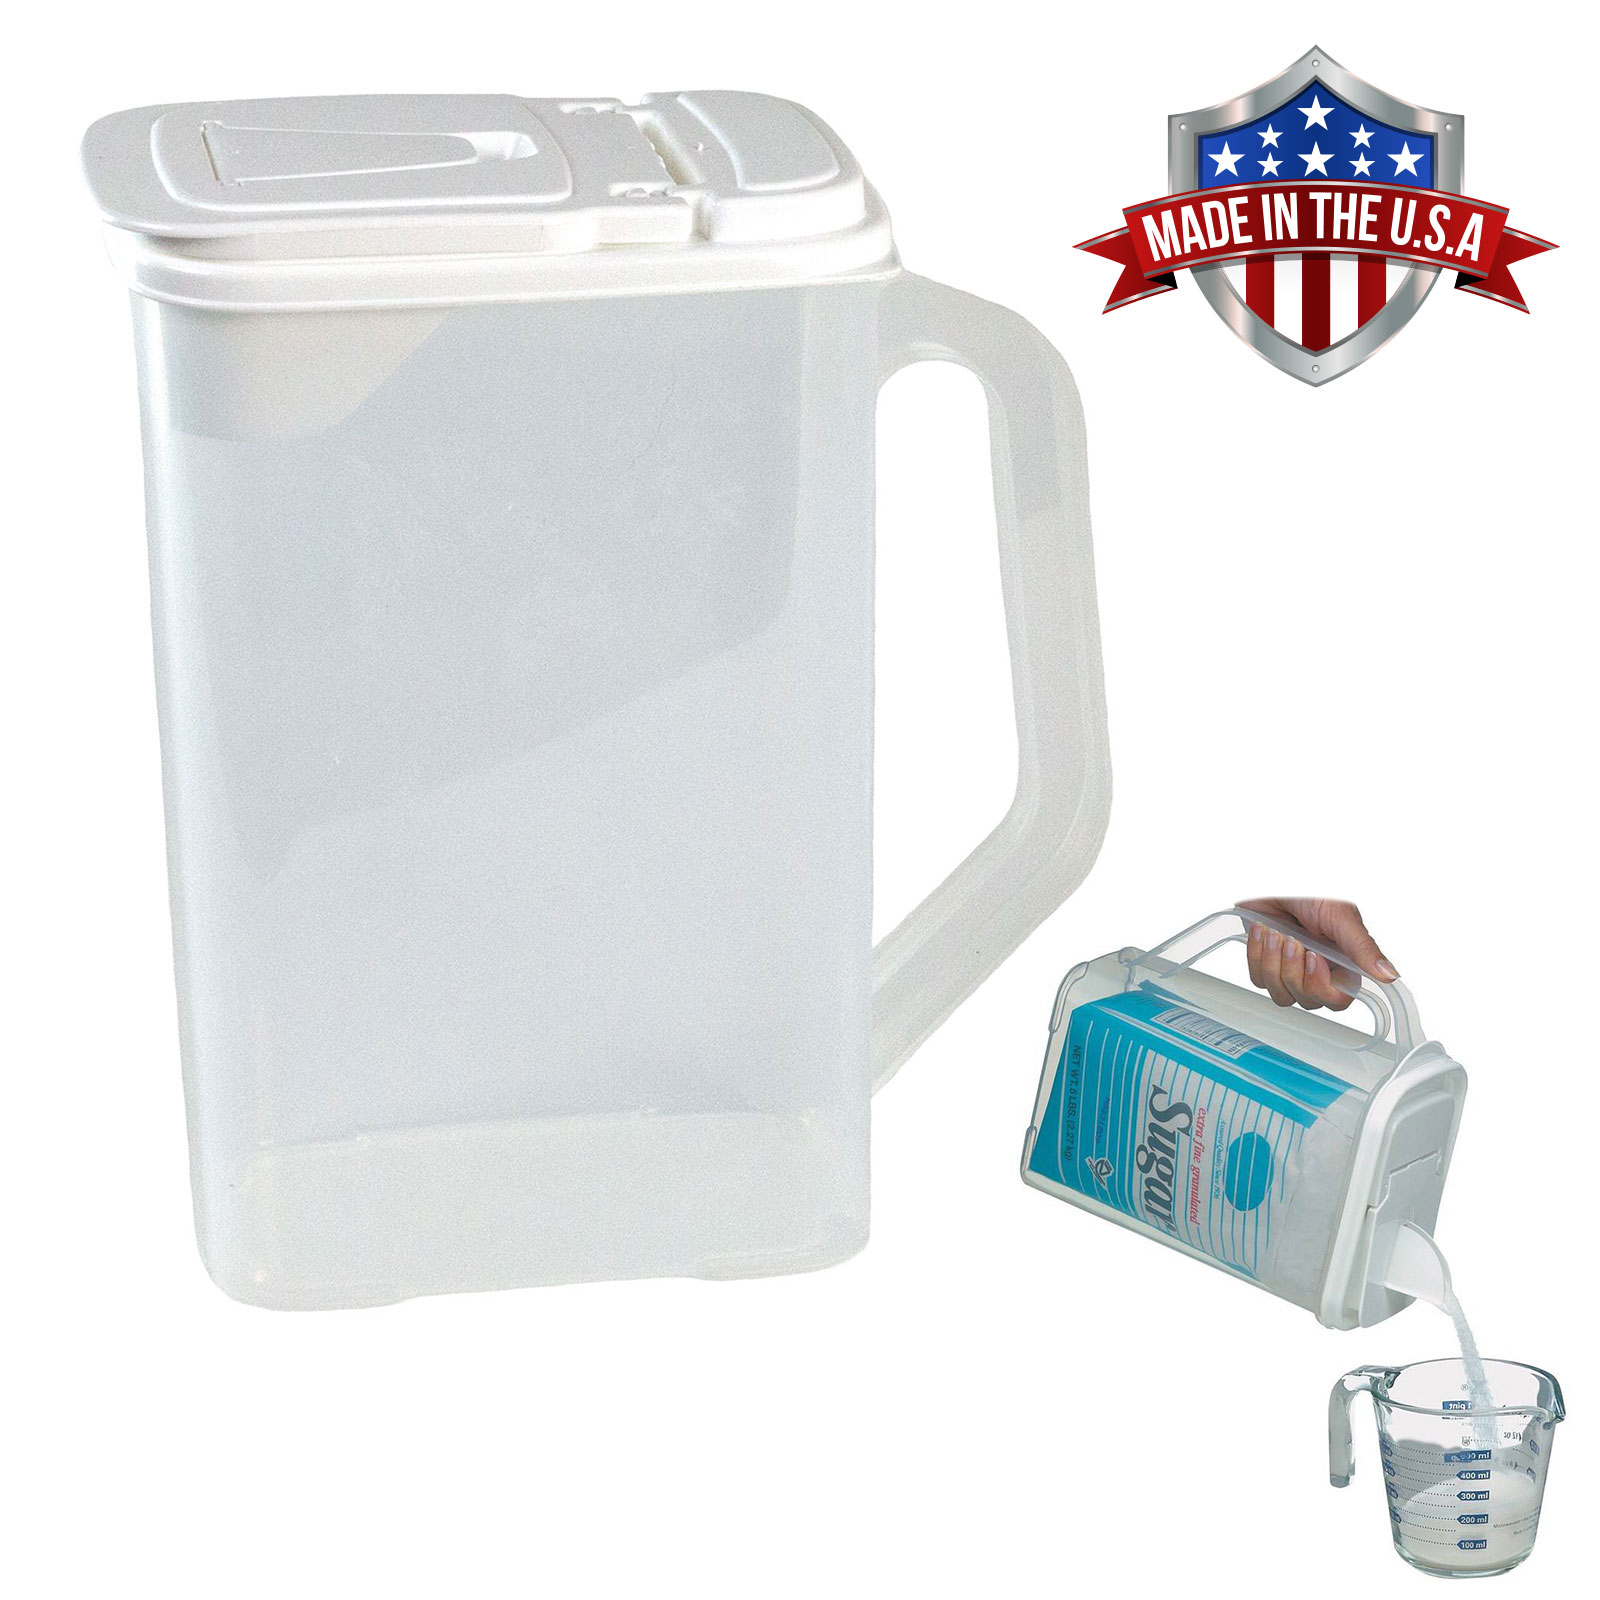 Food Storage Container 4 Qt Flour Sugar Bag-In Keeper Pour nu0027 Store Dispenser with Handle - Walmart.com  sc 1 st  Walmart & Food Storage Container 4 Qt Flour Sugar Bag-In Keeper Pour nu0027 Store ...